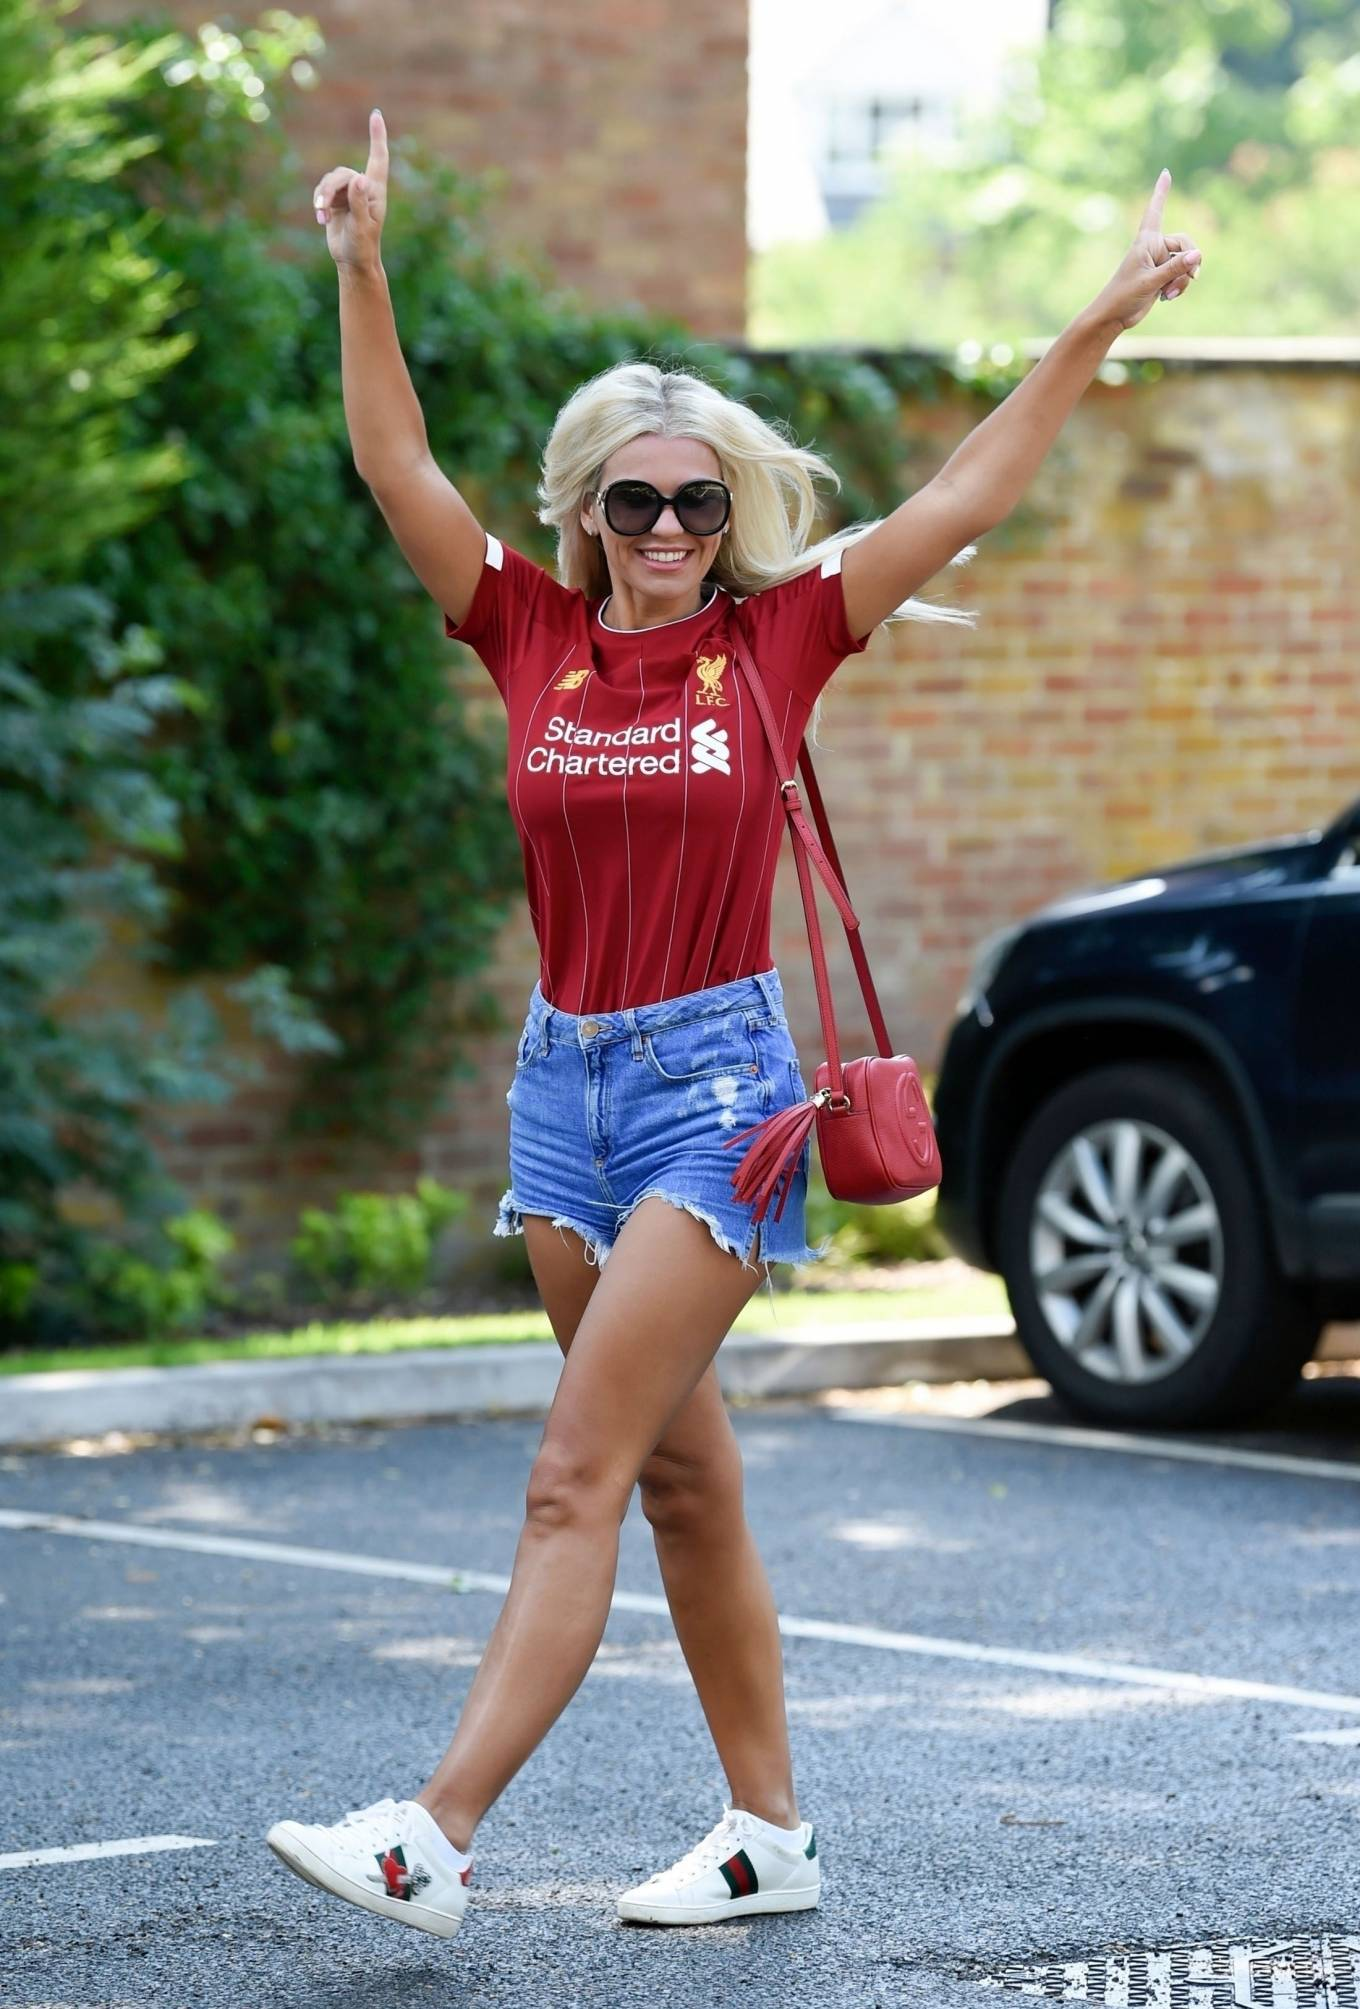 Christine McGuinness 2020 : Christine McGuinness in Jeans Shorts – Out and about in Cheshire-11